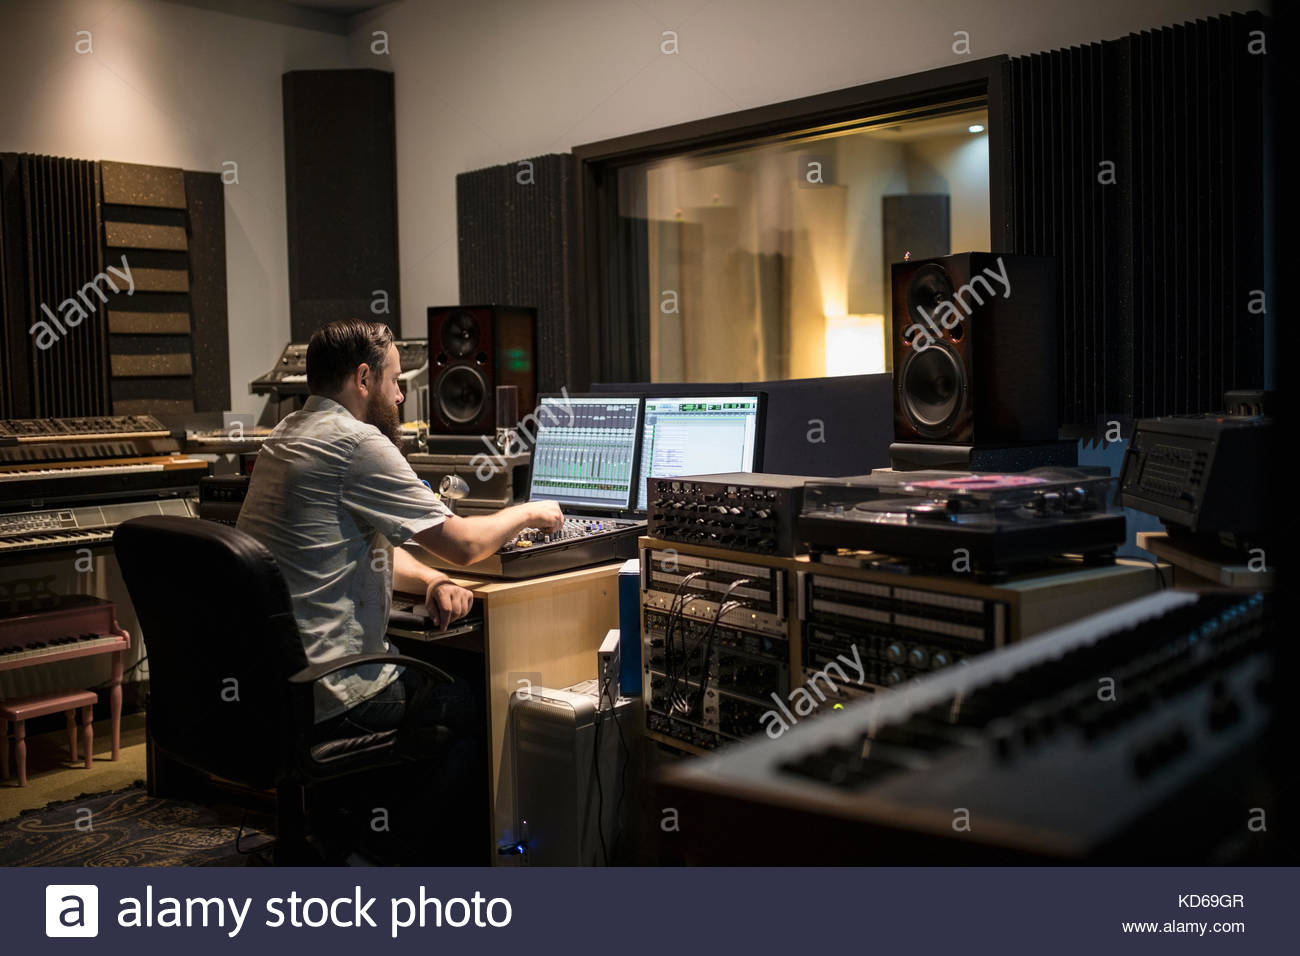 Male music producer working at computer in recording studio - Stock Image